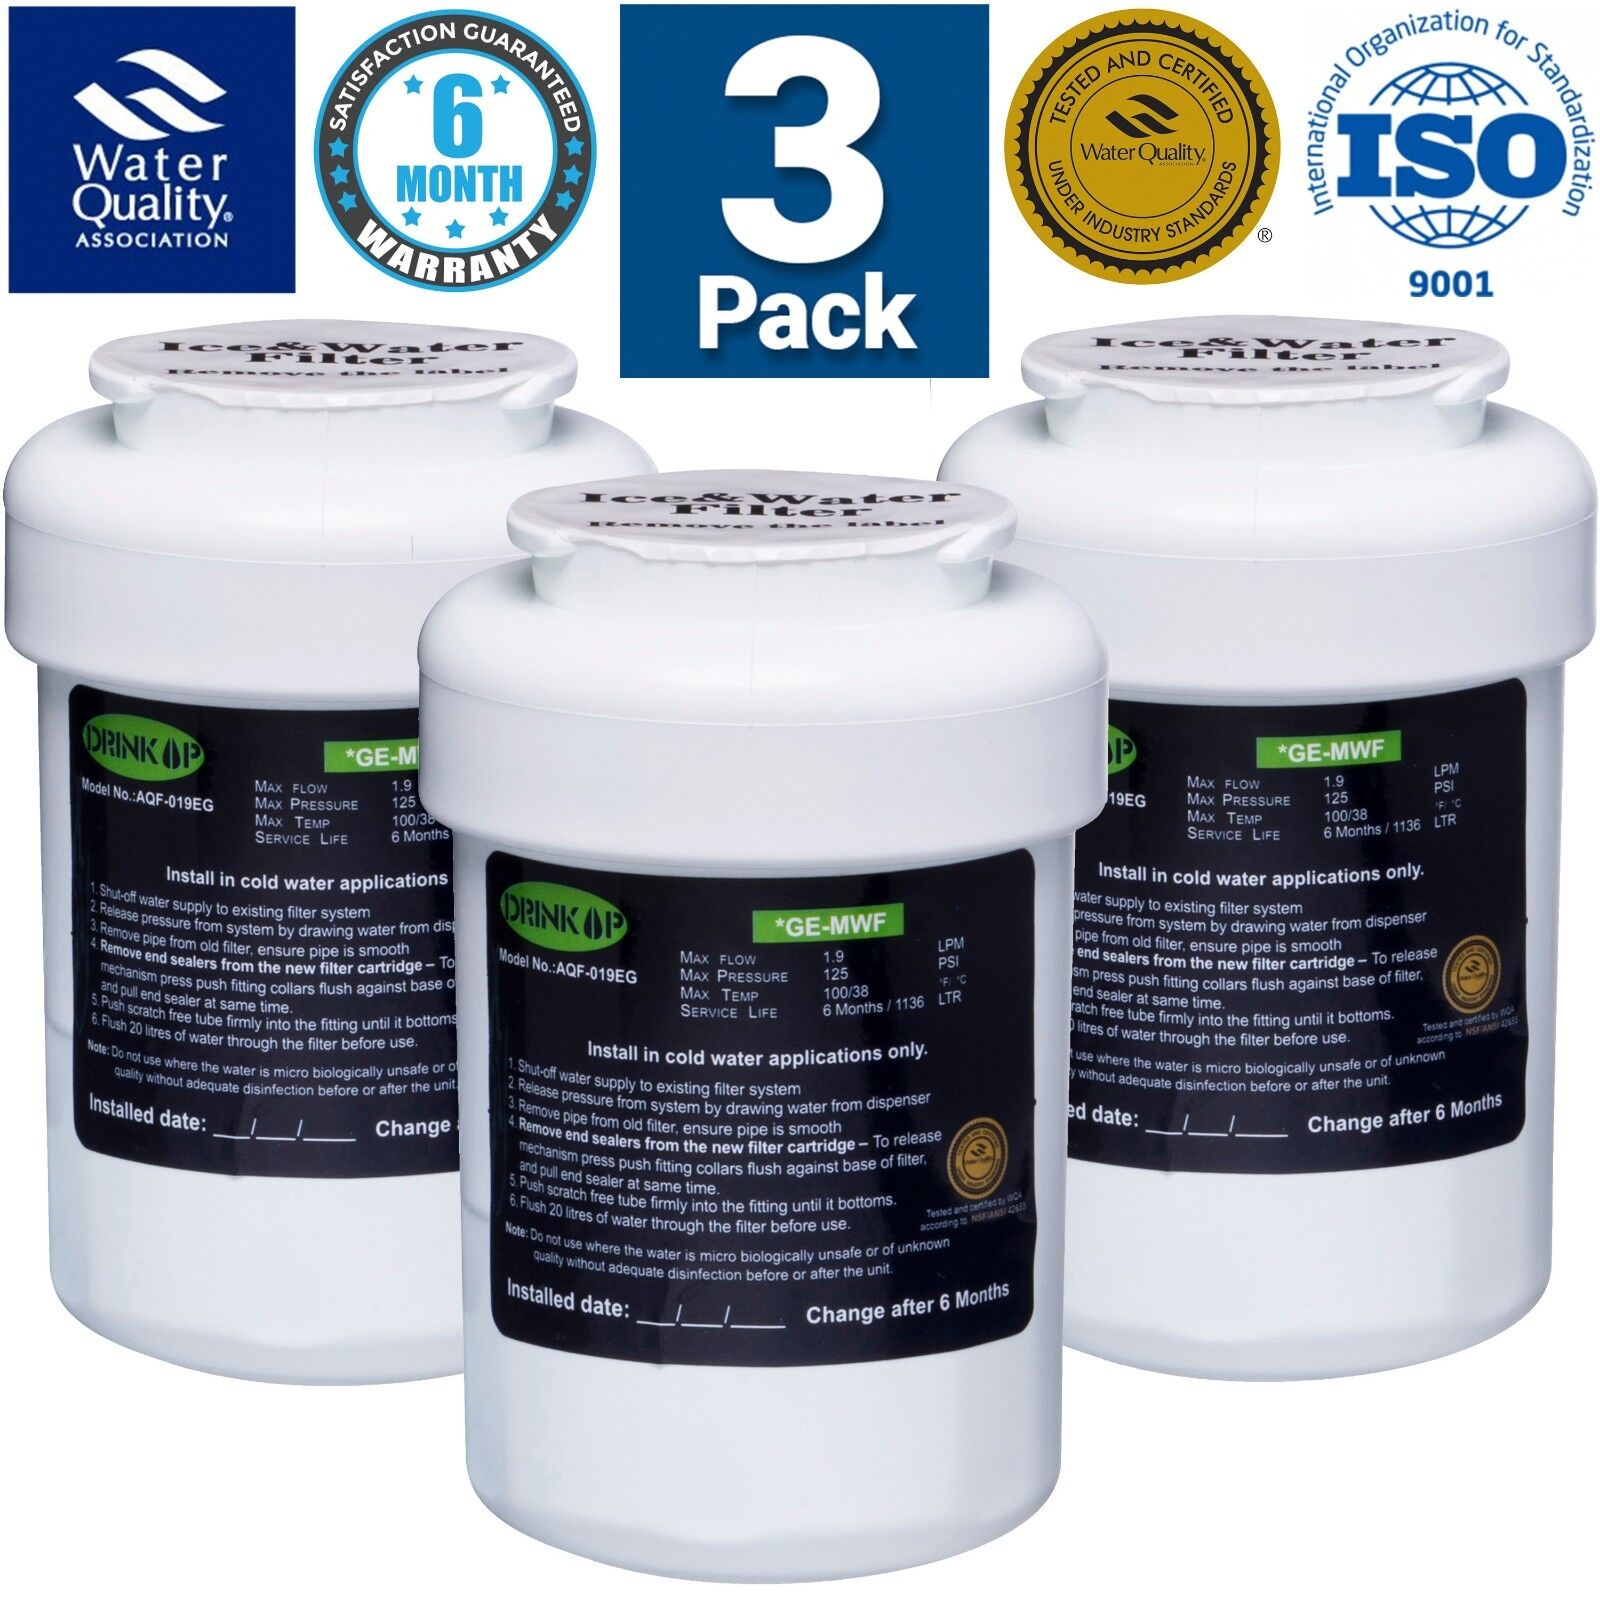 GE General Electric MWF Replacement Refrigerator Water Filter - 3 PACK